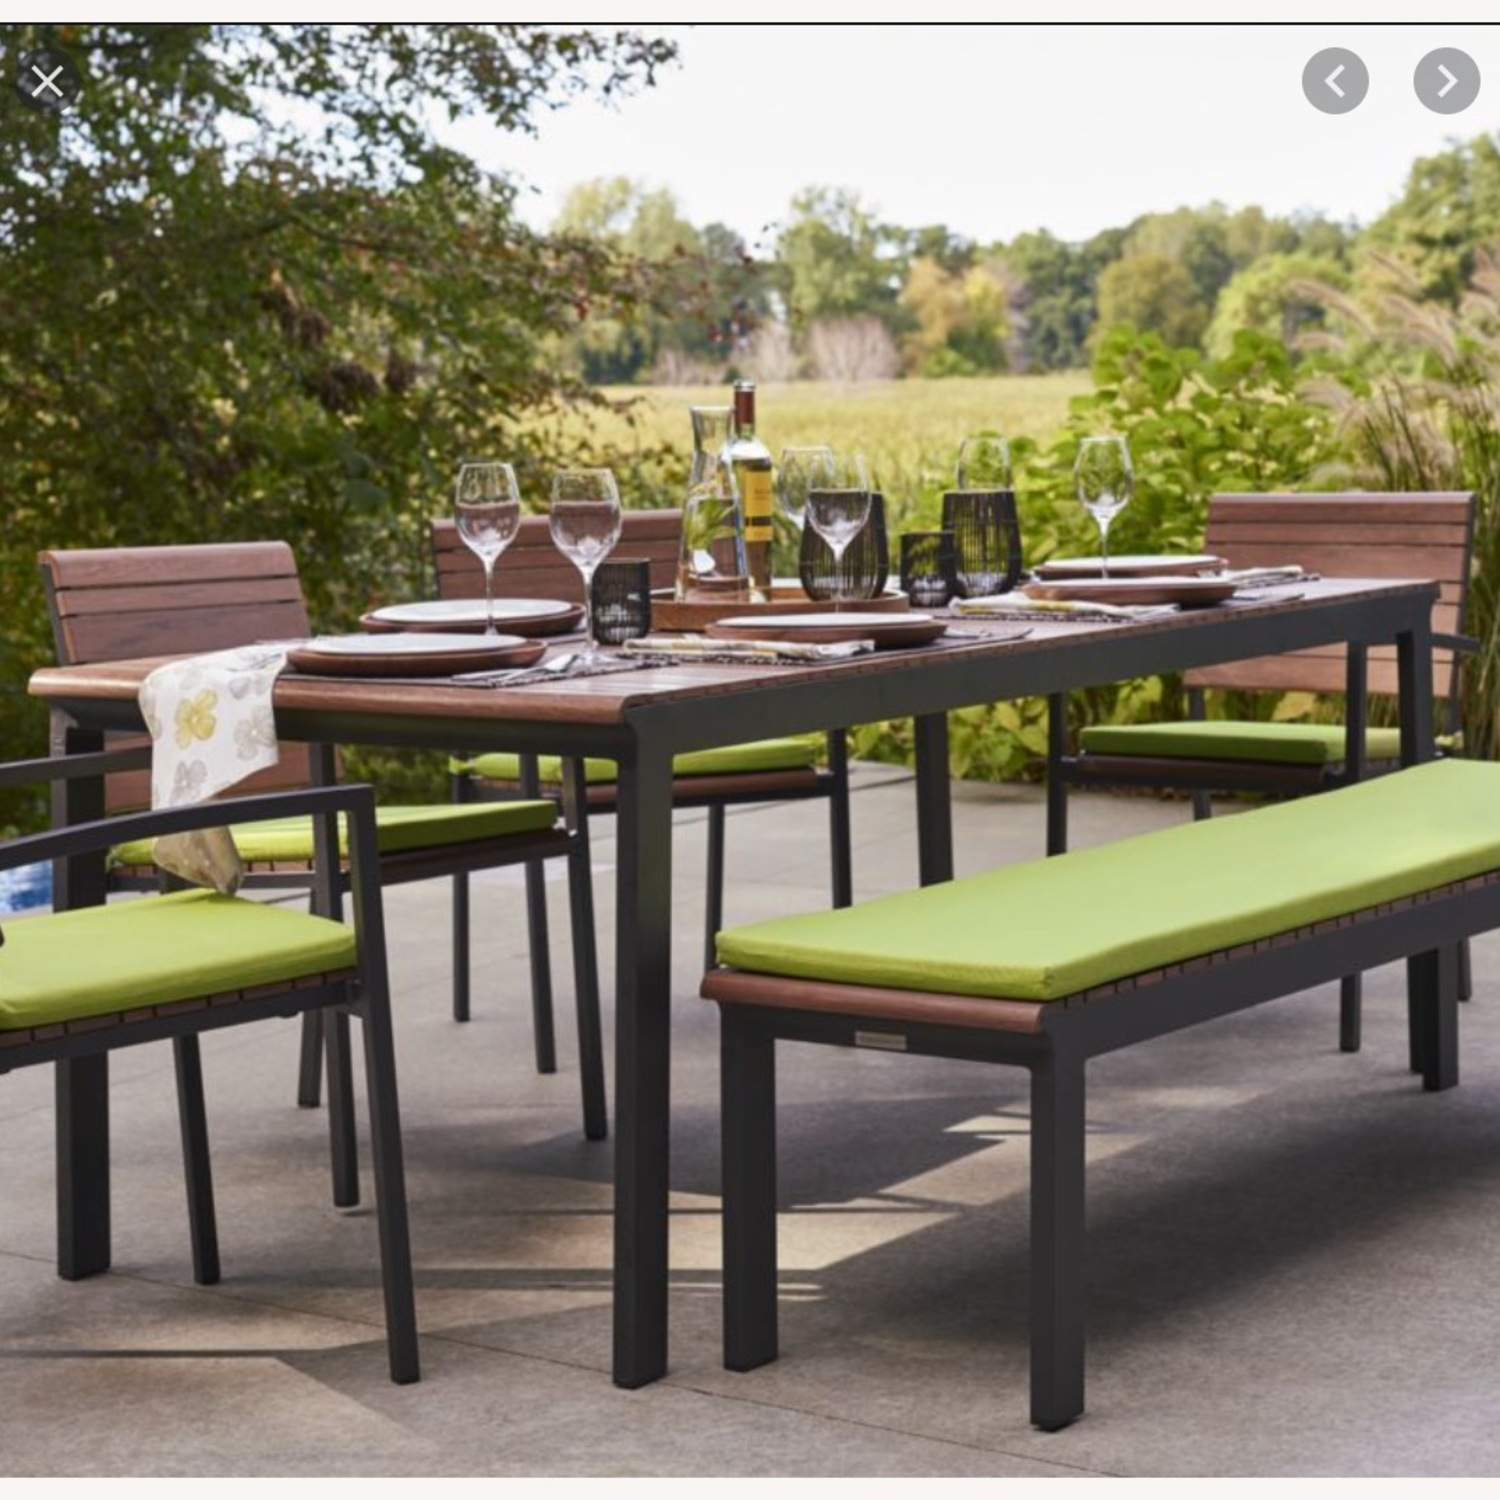 Crate & Barrel Outdoor Rocha Dining Table - image-1